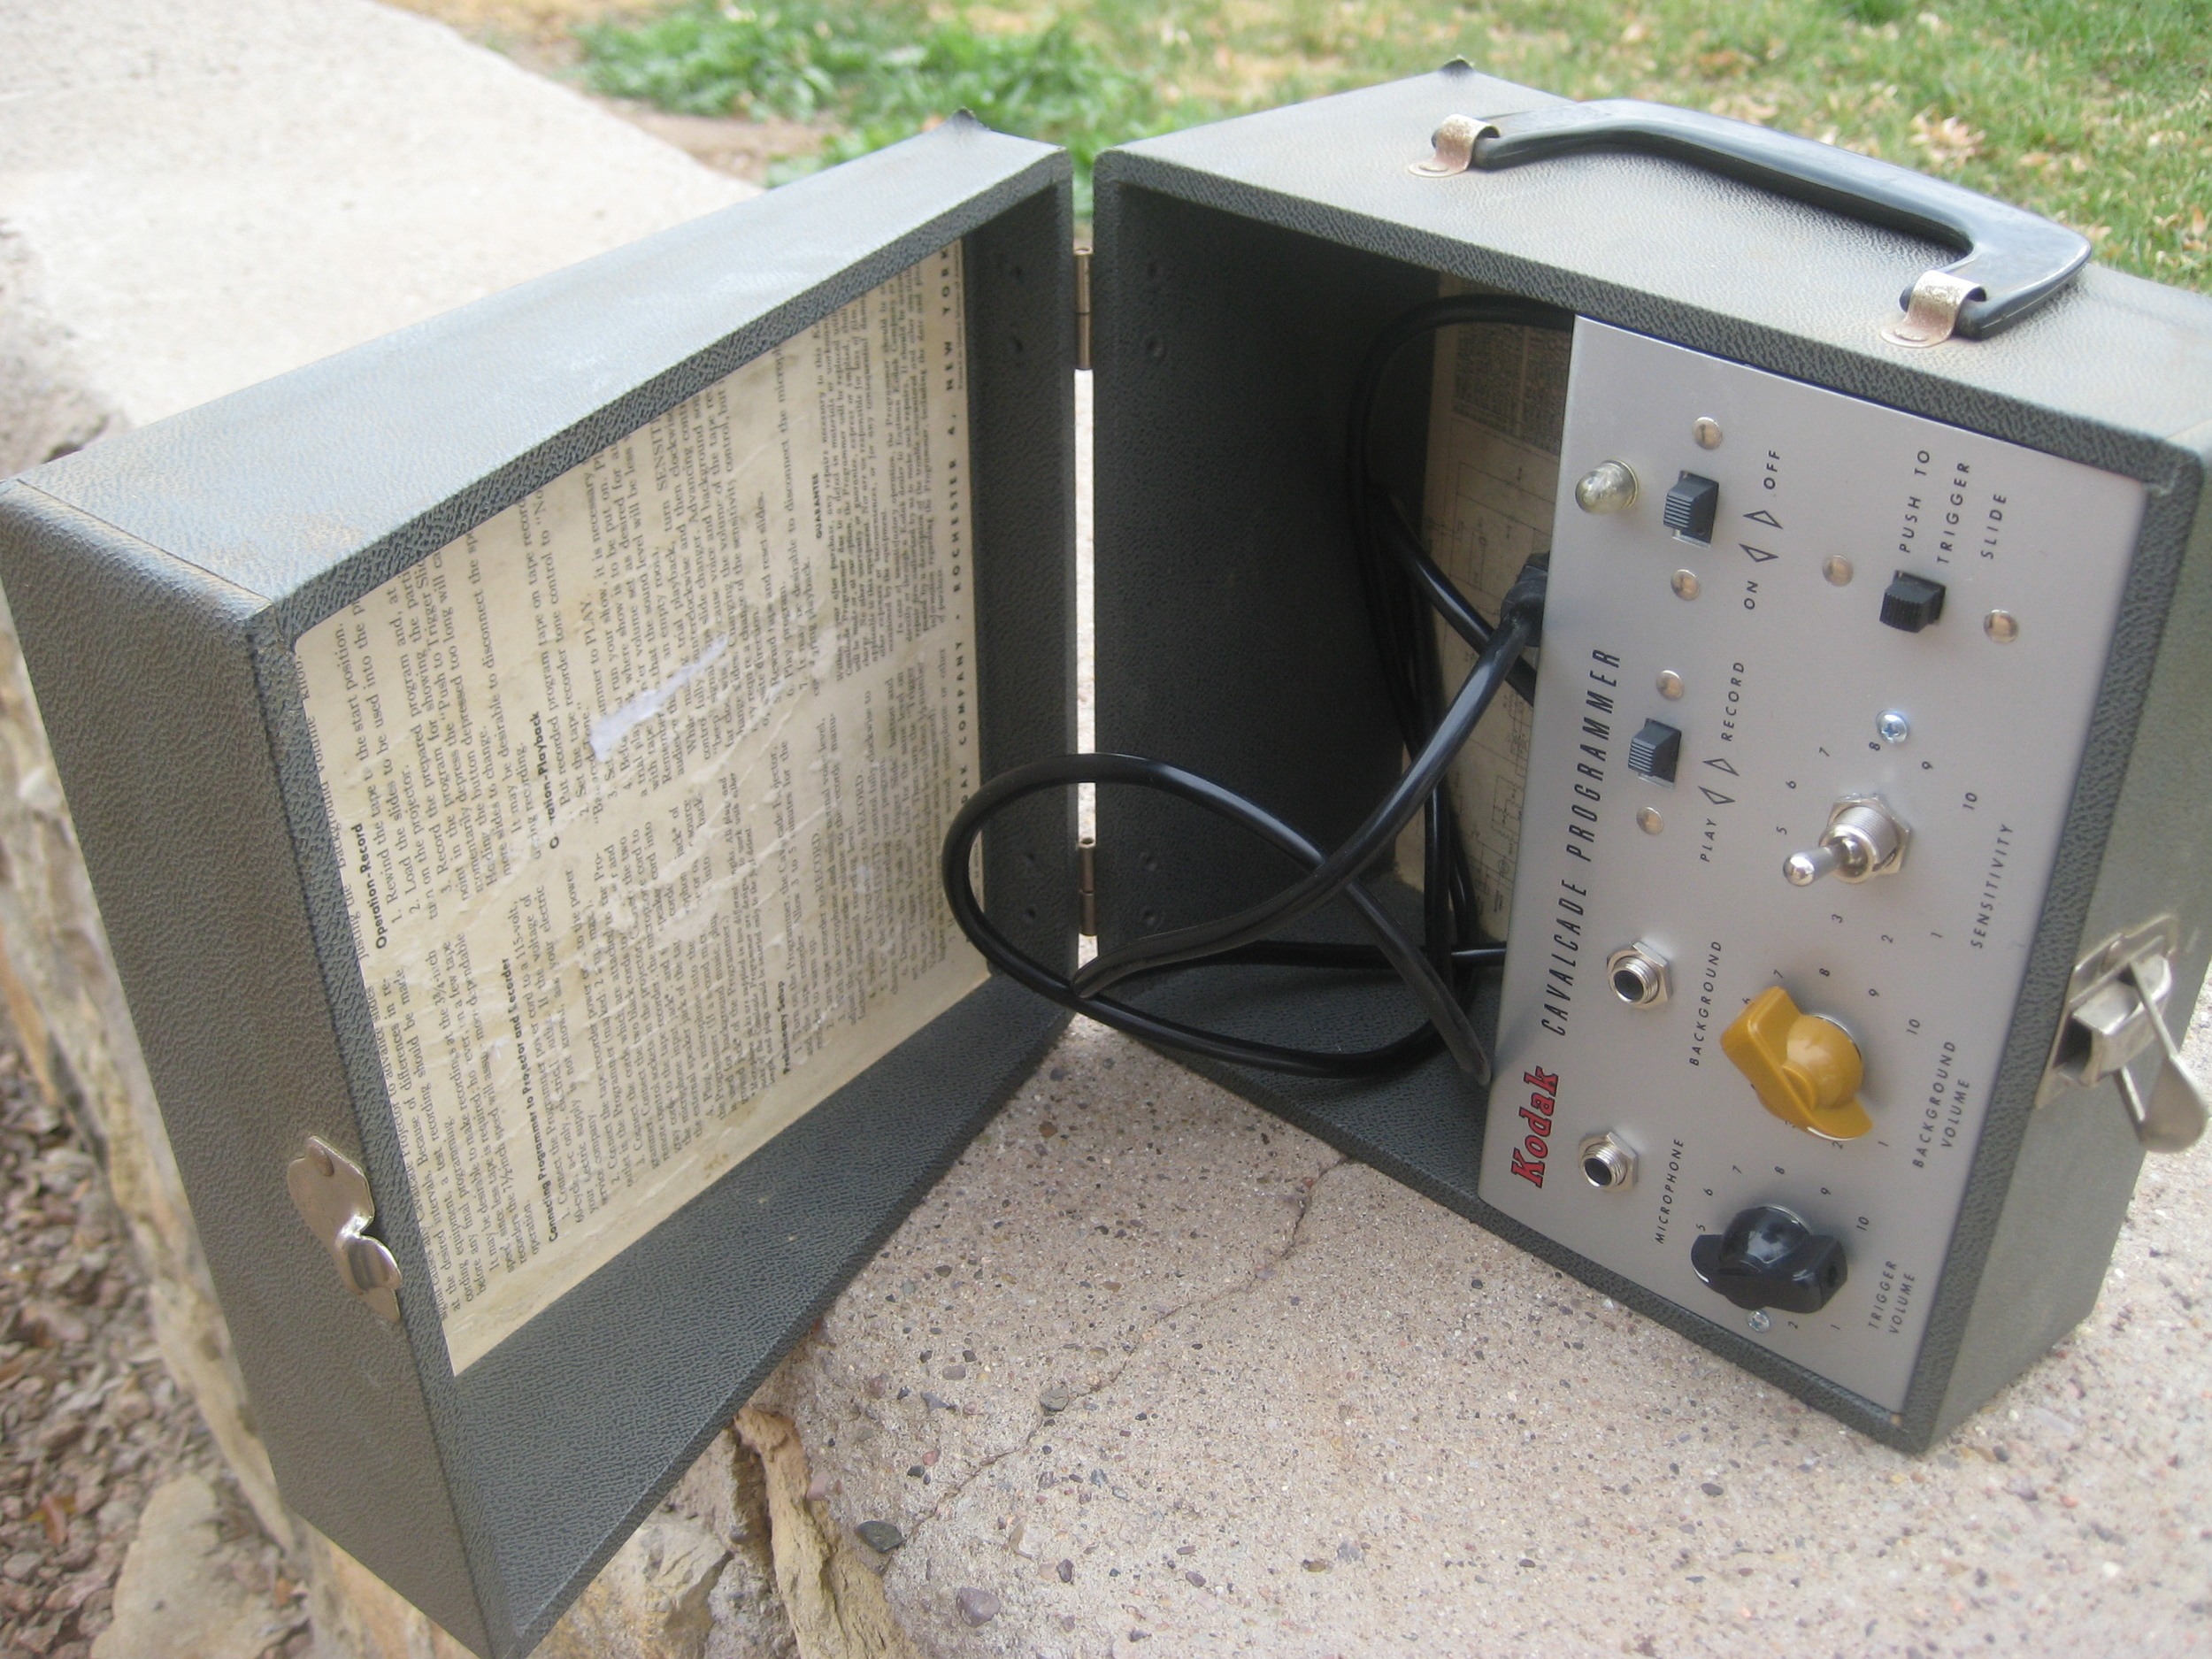 I converted this old Kodak Slide Programmer pre-amp into a high quality bass and guitar pre-amp. It has volume, tone and bass boost switch for controls. The new owner hooks it up to old solid state bass amp and was thrilled at the great tone!